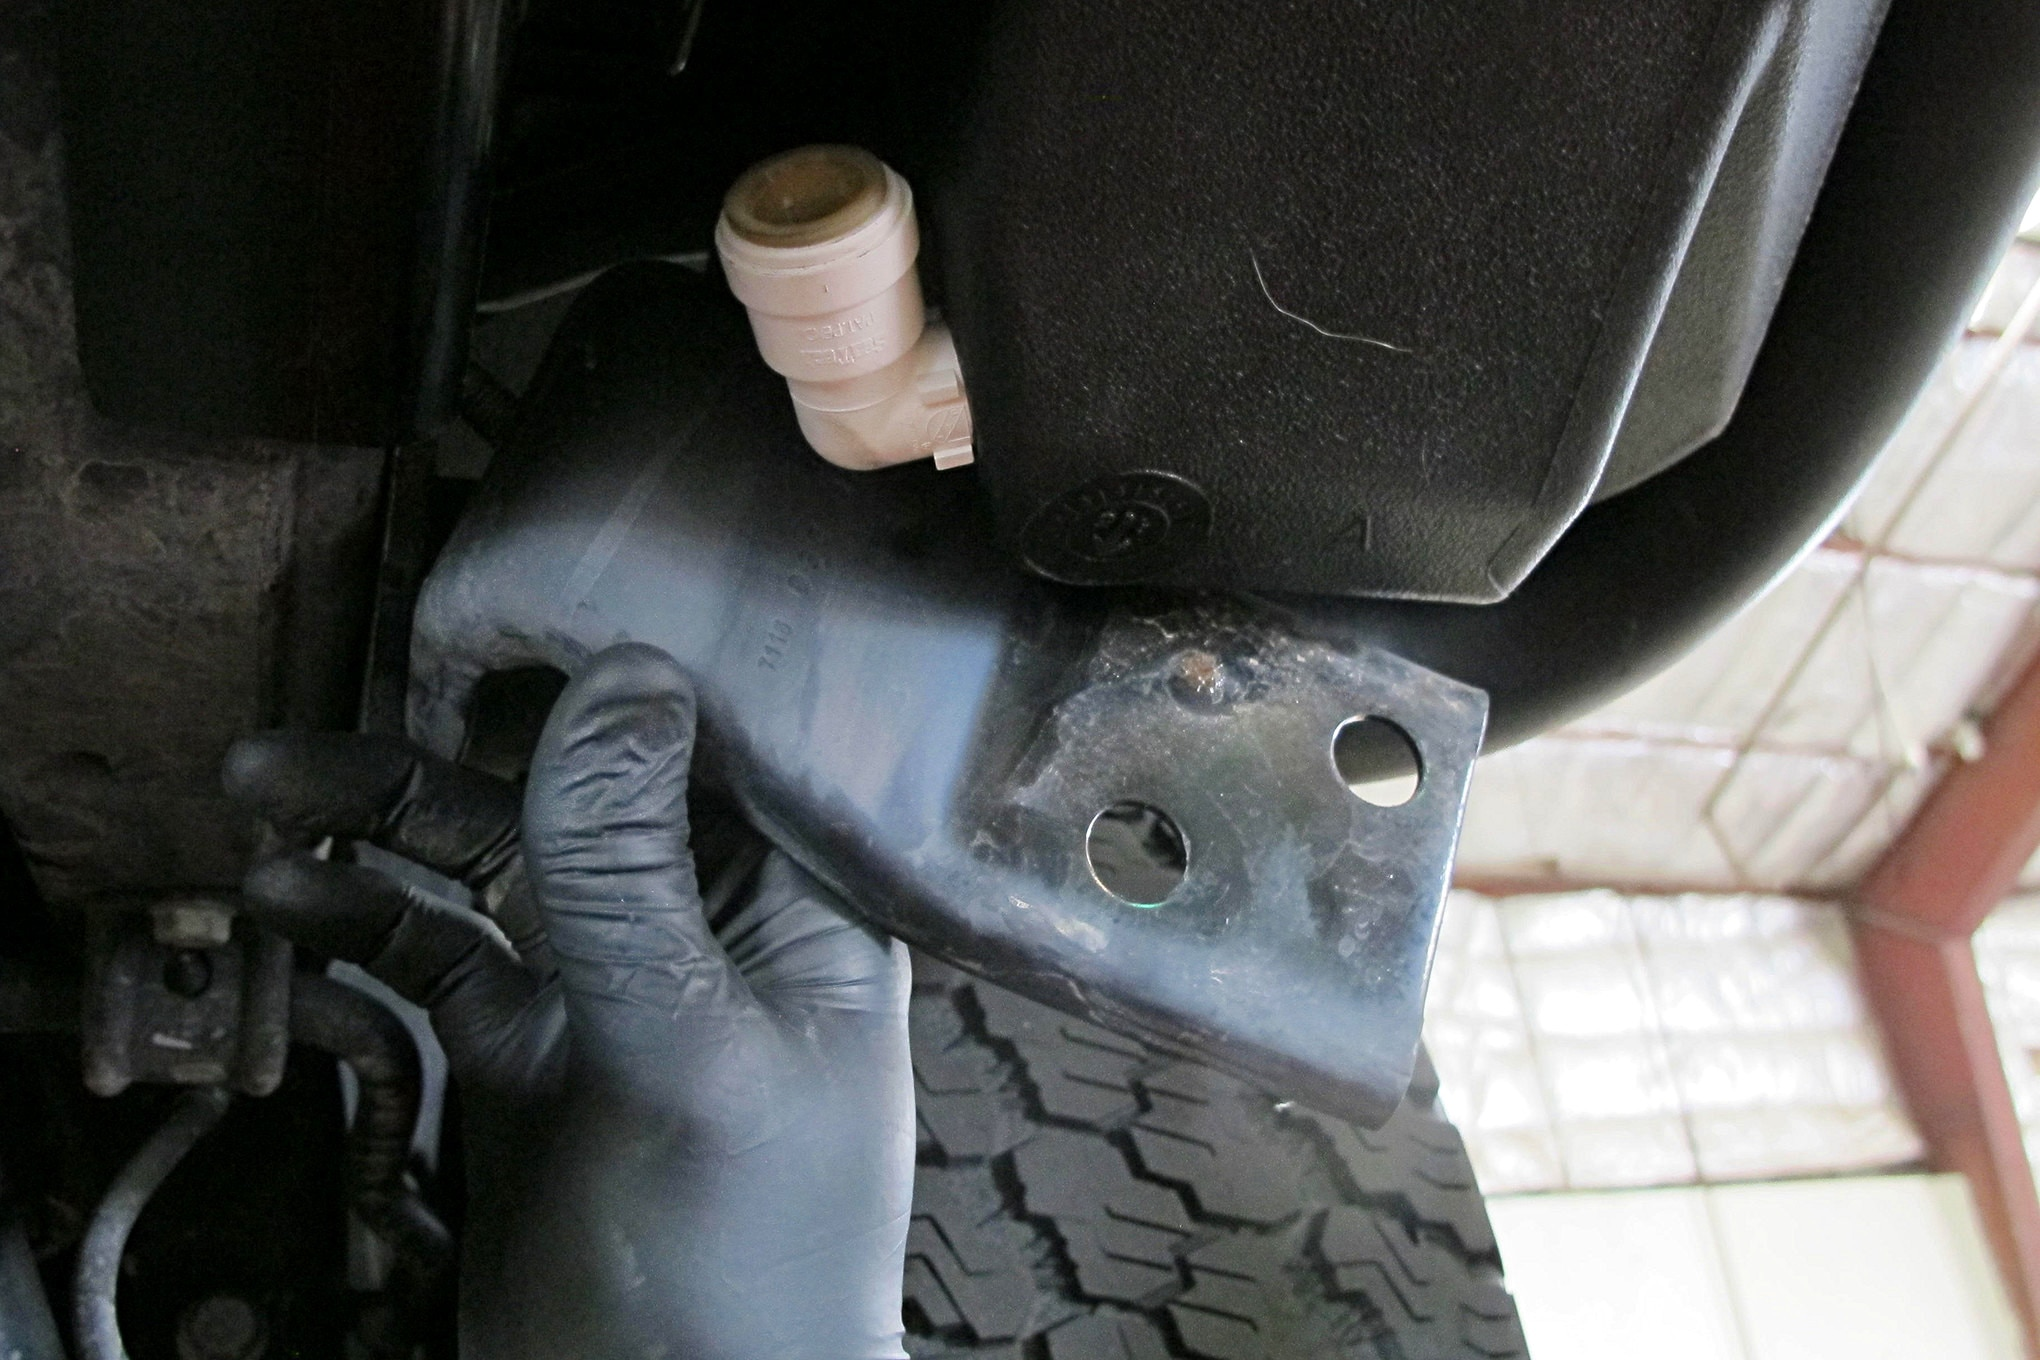 The water tanks, just like the blanks they replaced, were further secured using the existing brackets under the Jeep. We could then plumb the two tanks together and vent the passenger side tank per the AEV instructions.